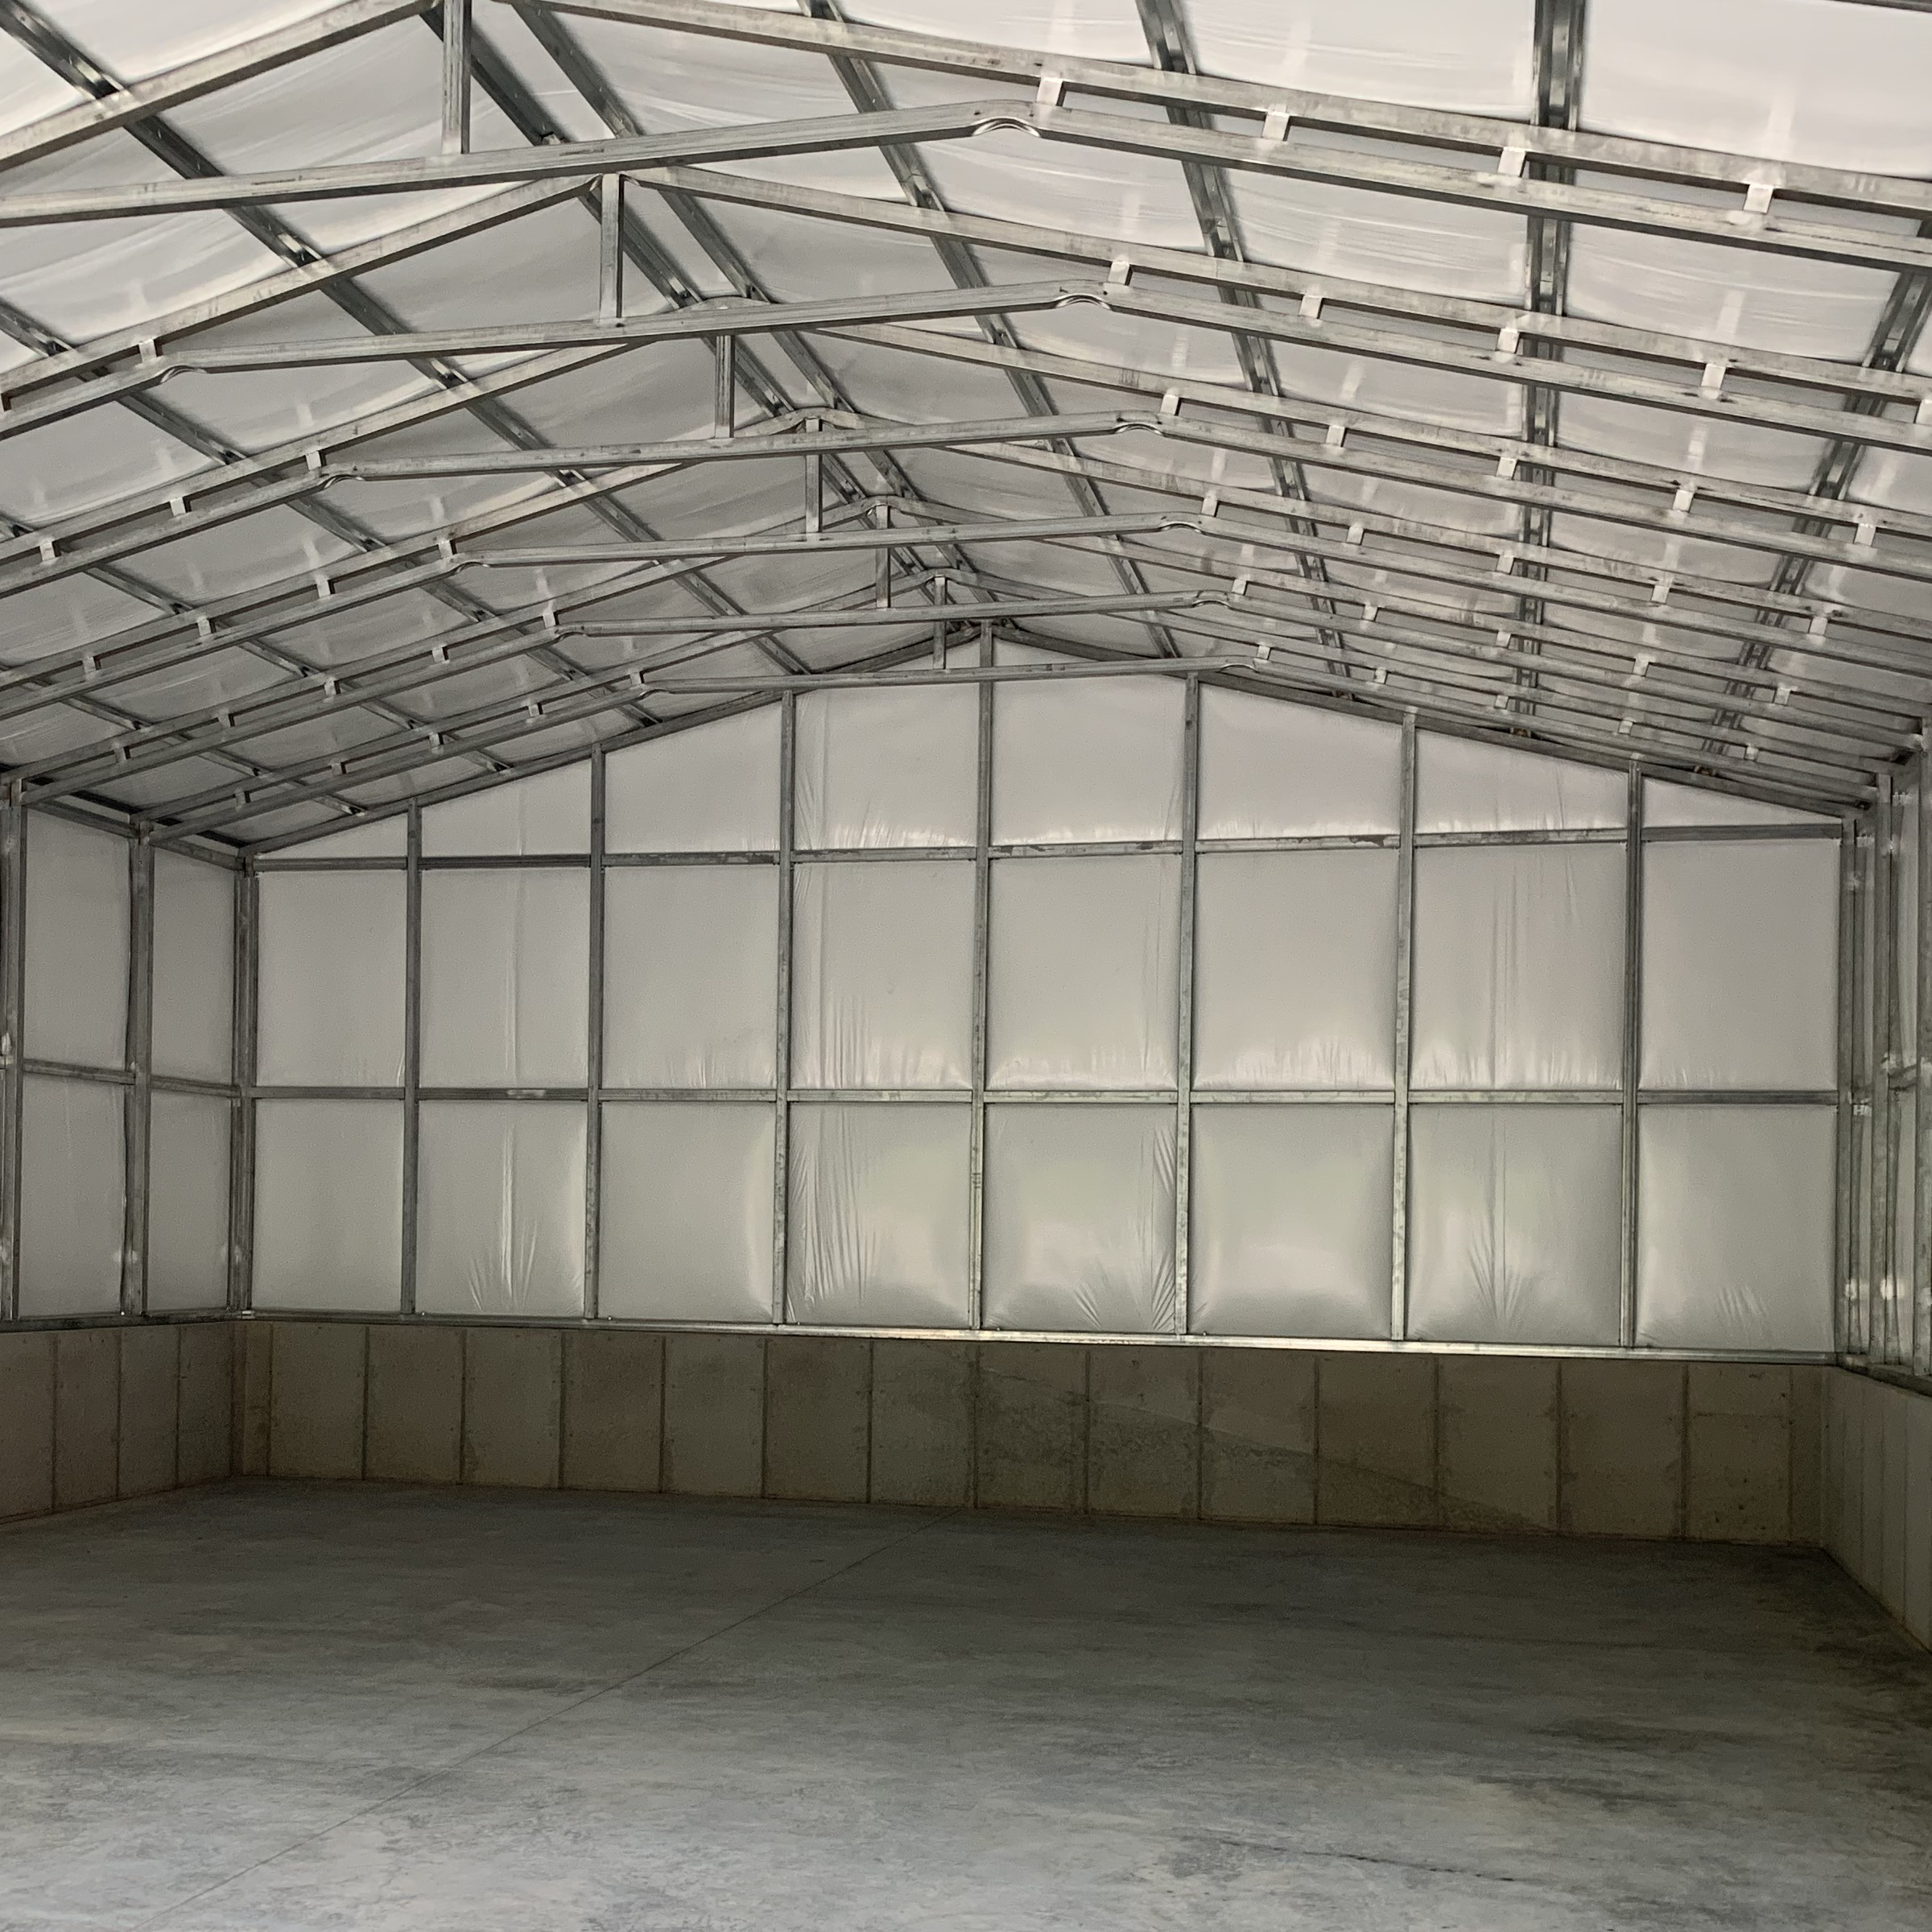 Insulated Metal Outdoor Storage Building Stallings NC